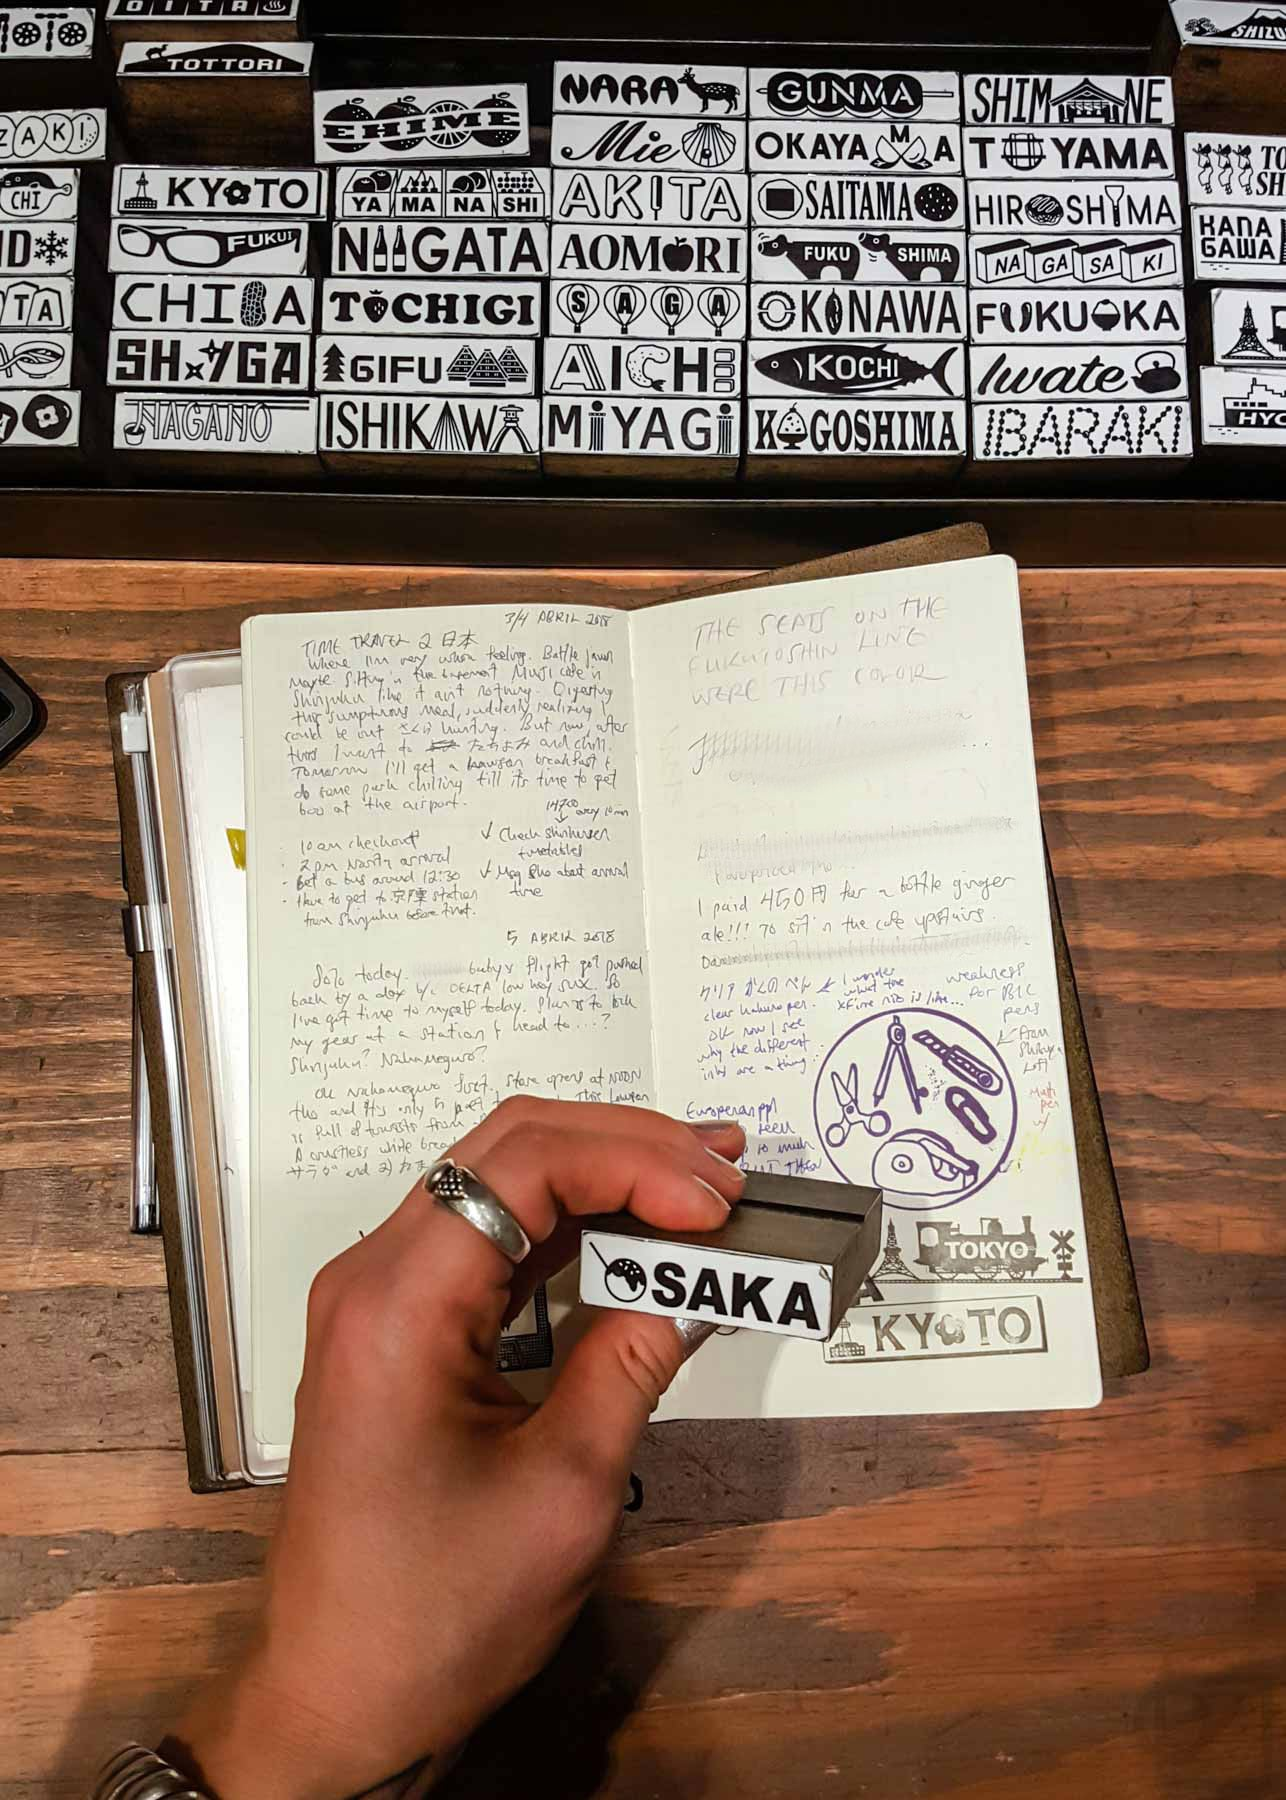 I stamped Tokyo, Kyoto, and Osaka in my journal at the Tokyo Station TRF, since I was visiting those three cities on my trip